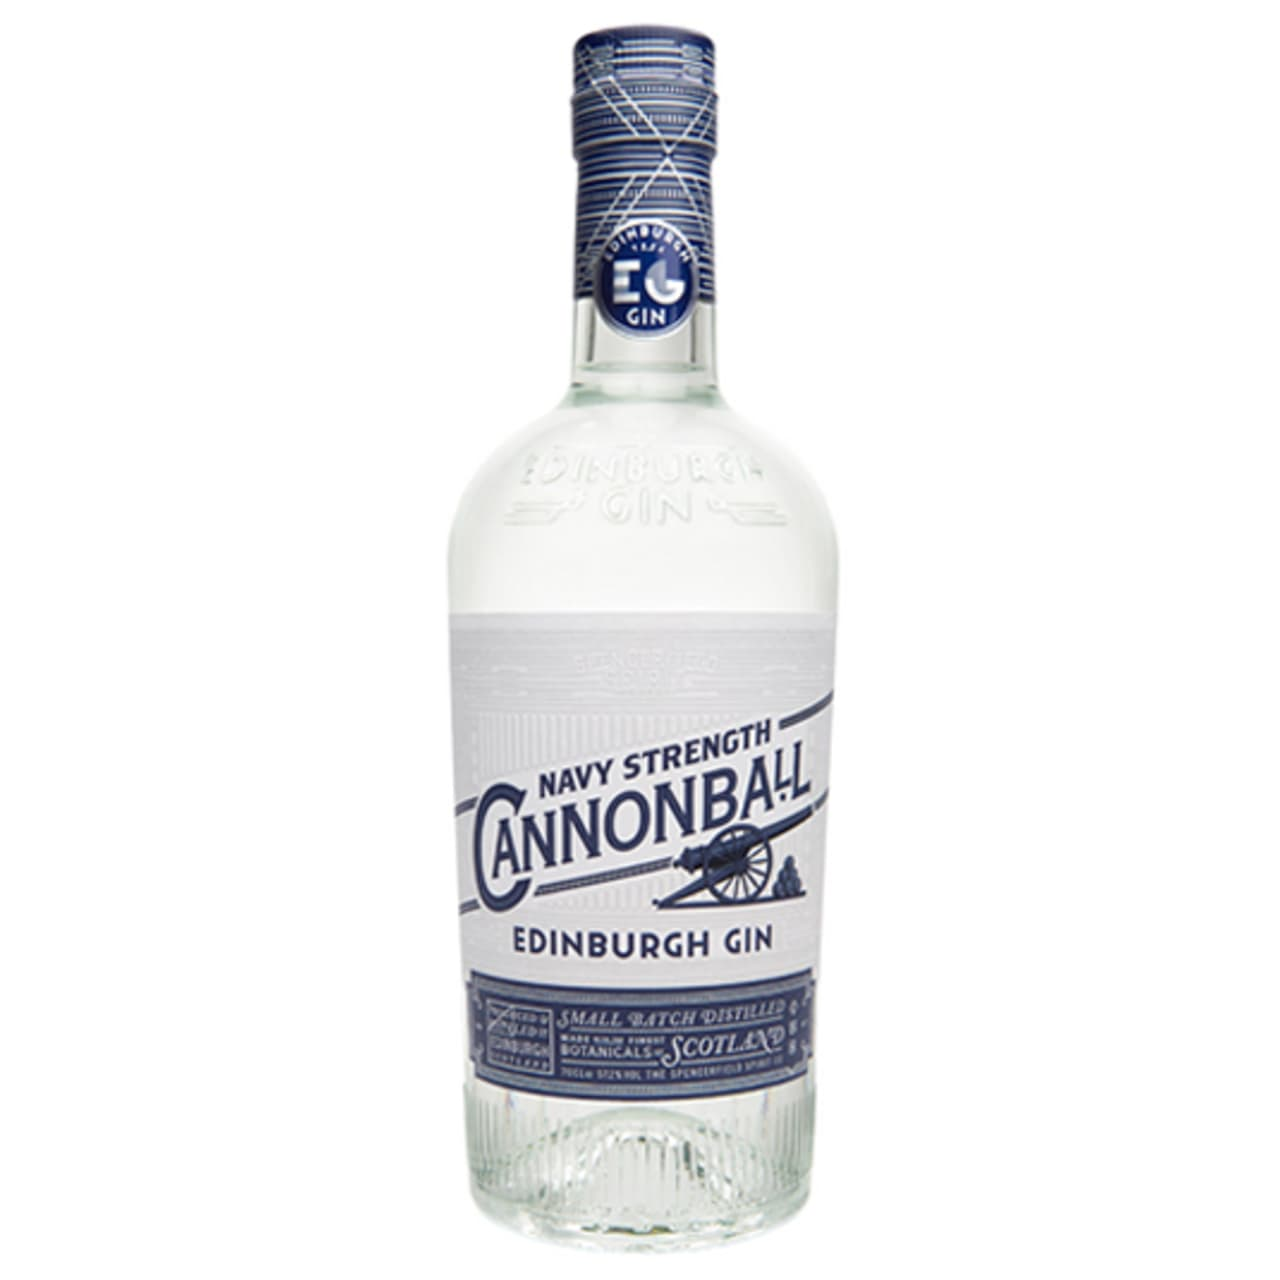 Product Image - Edinburgh Gin Cannonball Navy Strength Gin